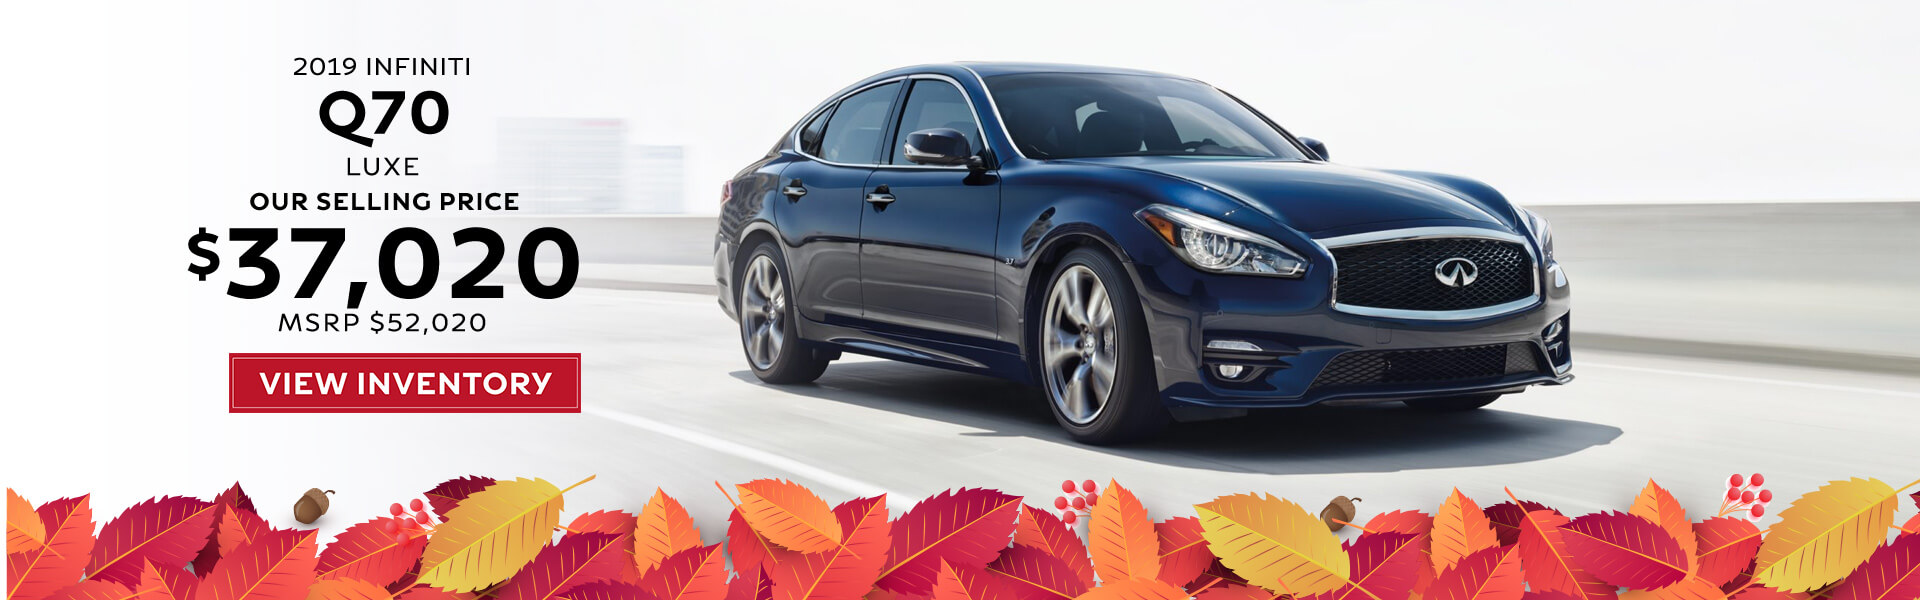 Q70 LUXE